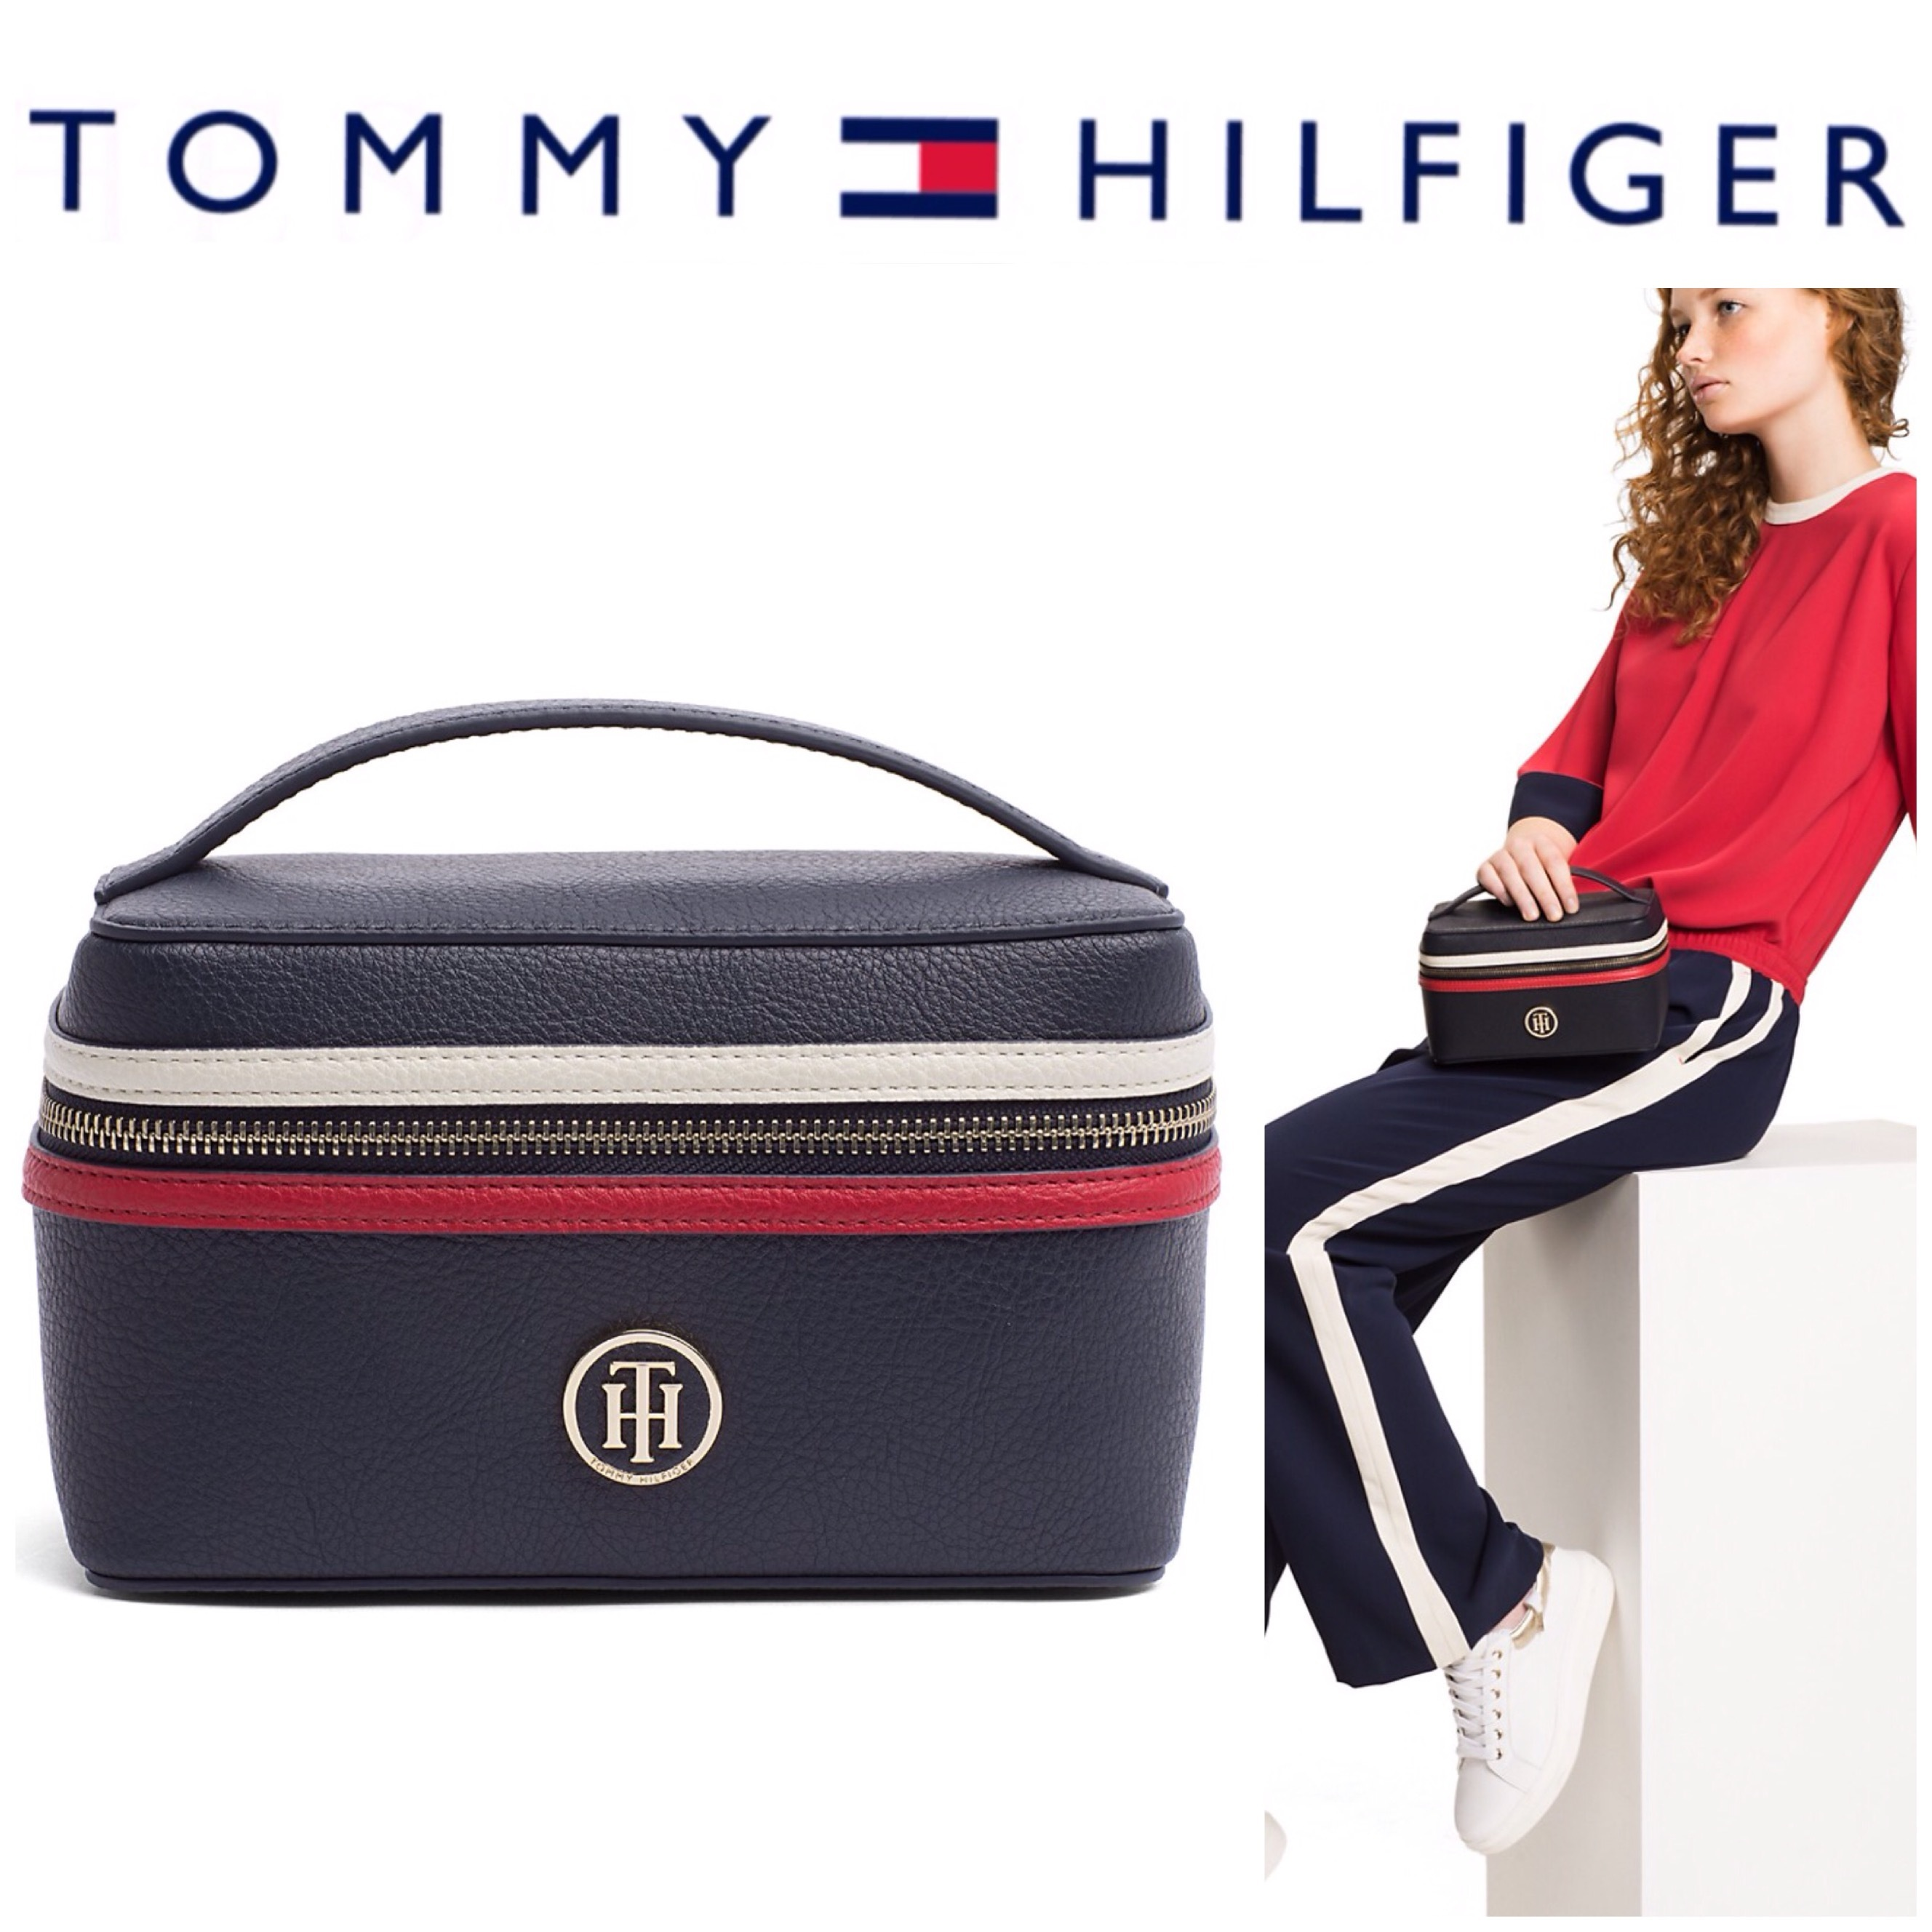 【Tommy Hilfiger】可愛い メイクアップ ポーチ ロゴマーク付き